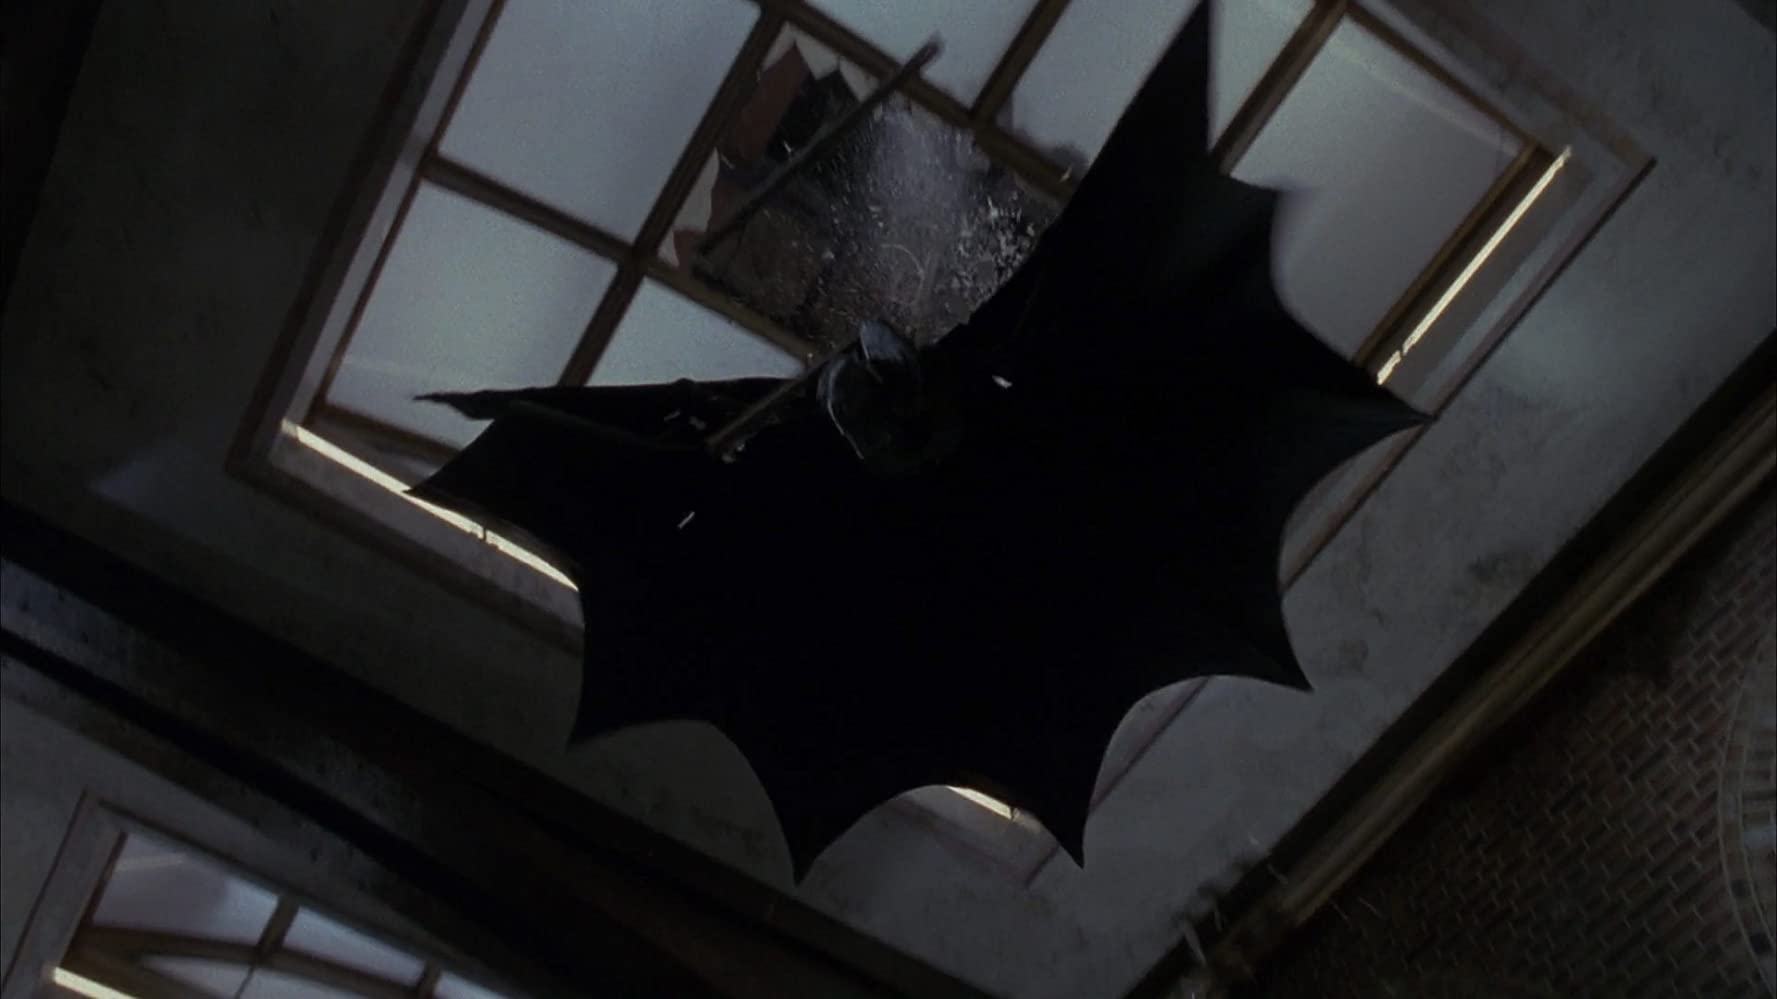 Michael Keaton in Batman (1989)